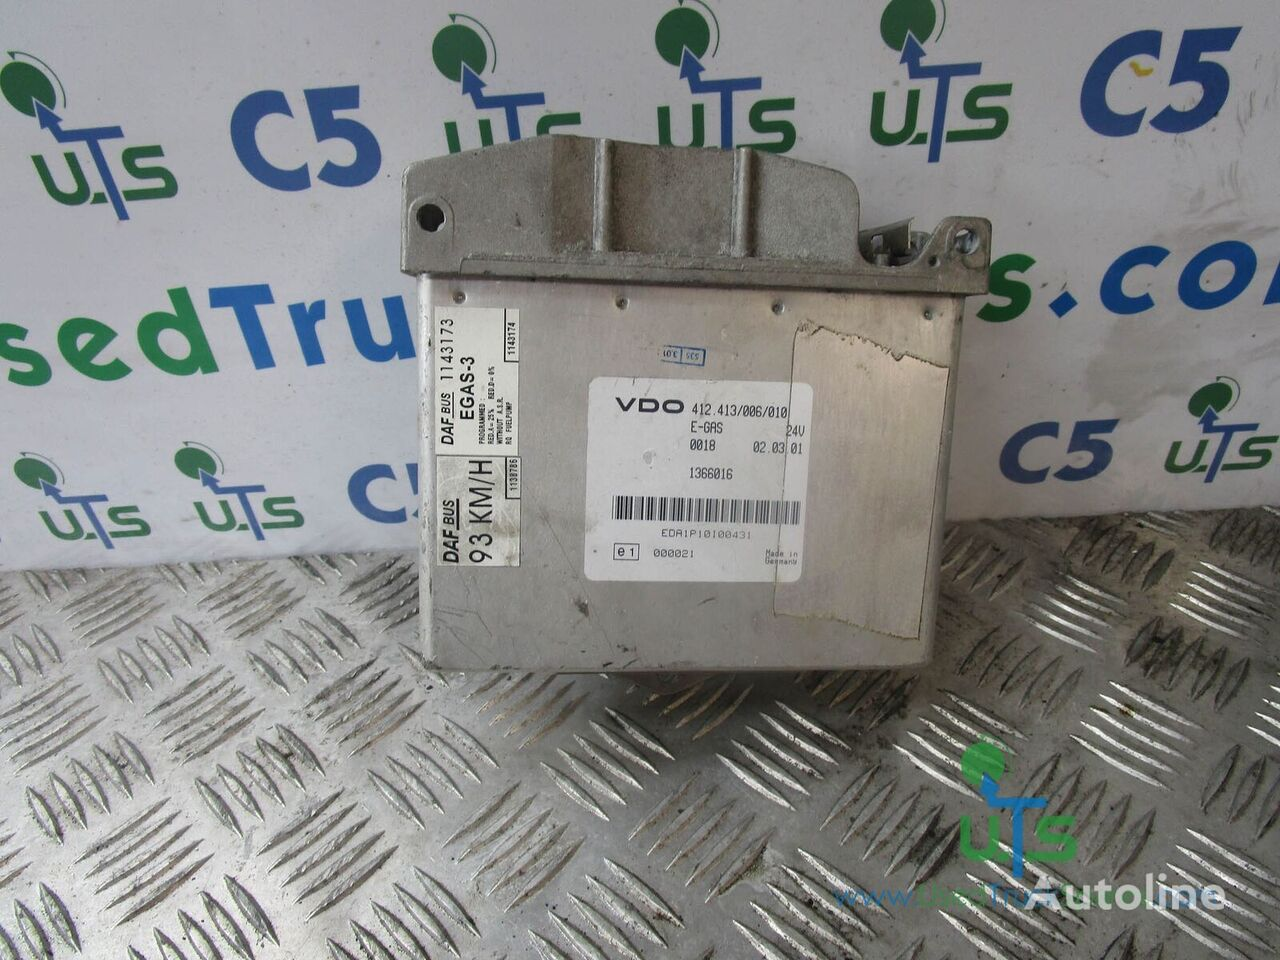 (412.413/006/010) control unit for DAF truck